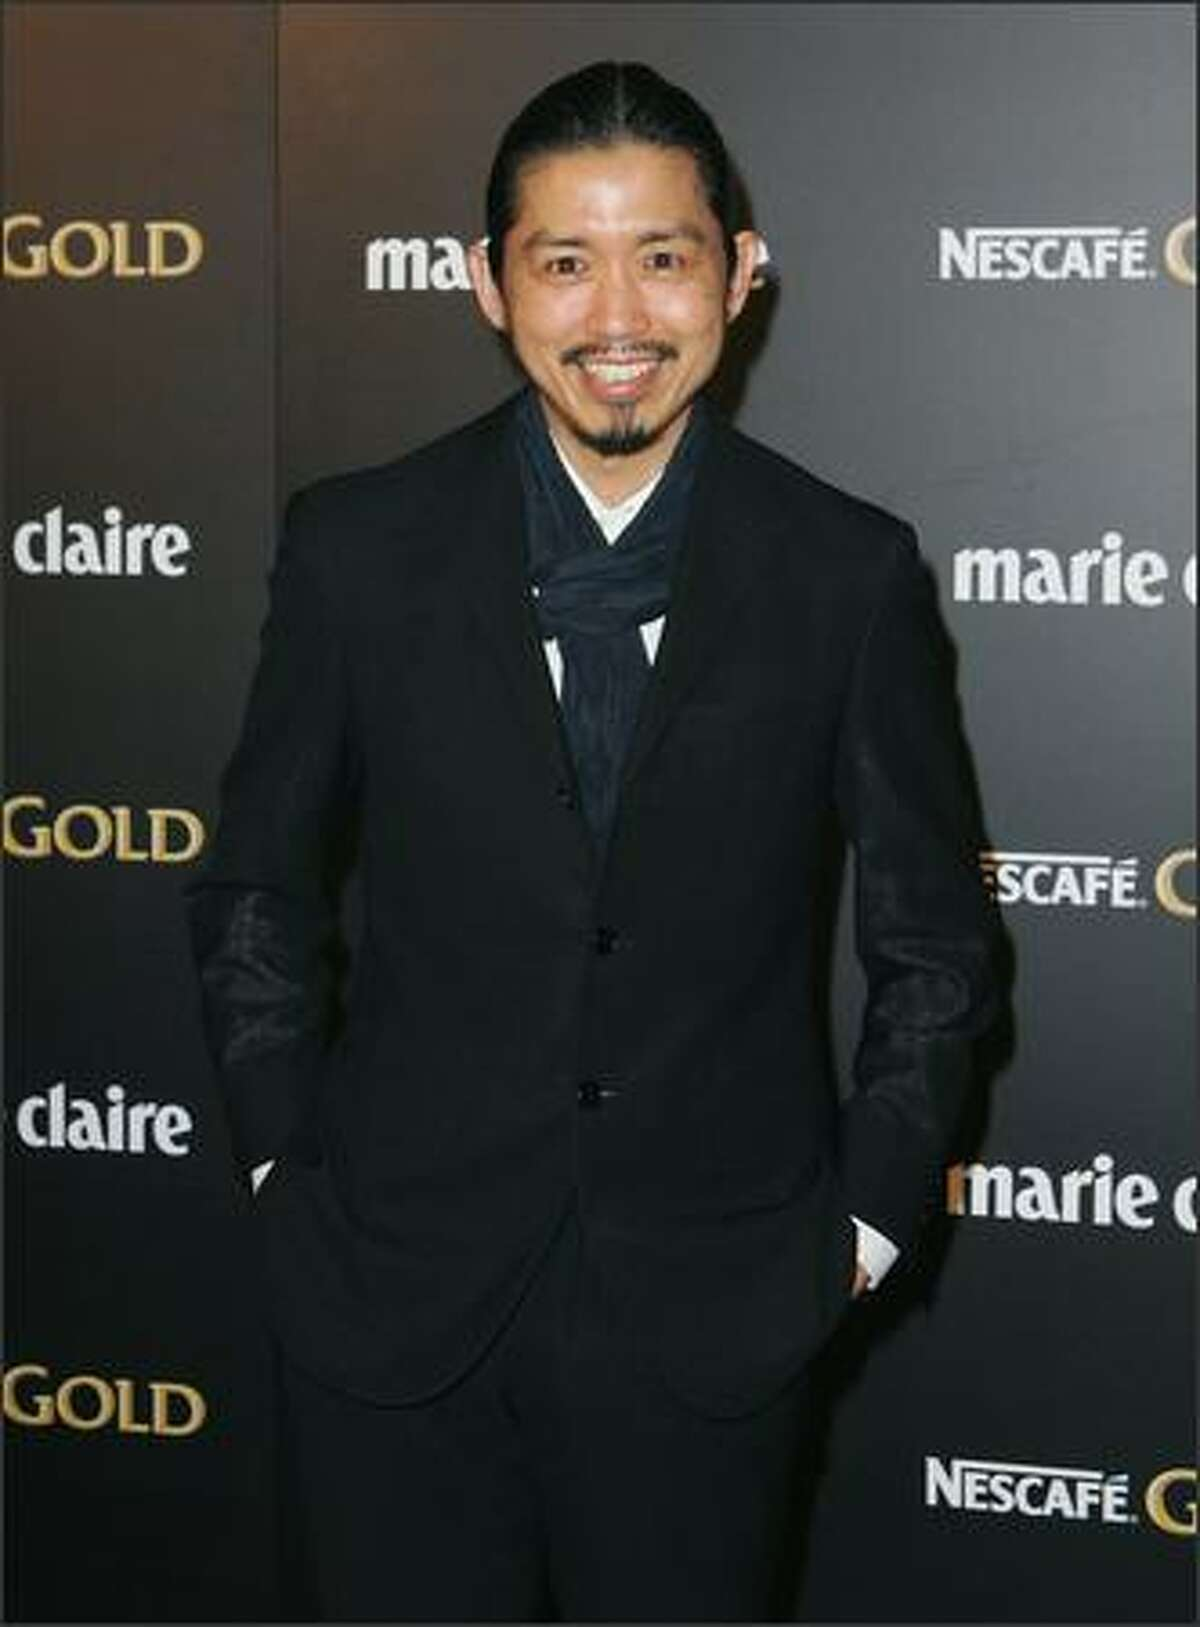 Fashion designer Akira arrives for the 2009 Prix de Marie Claire Awards at the Royal Hall of Industries in Sydney, Australia.